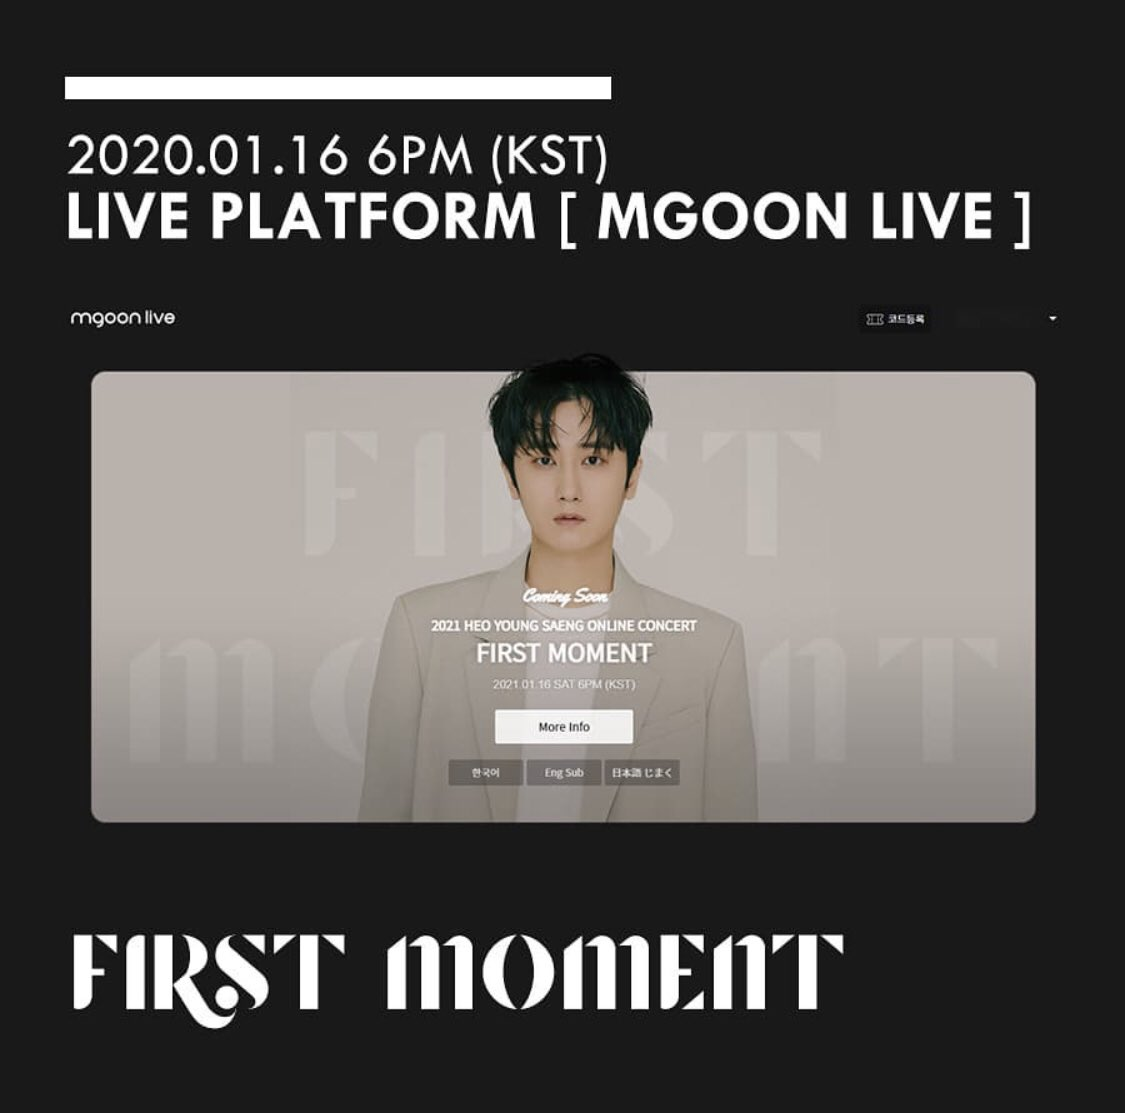 🔔 [#TripleS] Twitter & Instagram Hashtags Party for @mystyle1103 First Moment Online Concert & @jdream_kyuzone Online Sign Event  🗓 2021.01.16  🕔 Starts 5PM KST   Hashtags:   # YSFirstMoment_OnlineConcert # KJ_OnlineSignEvent